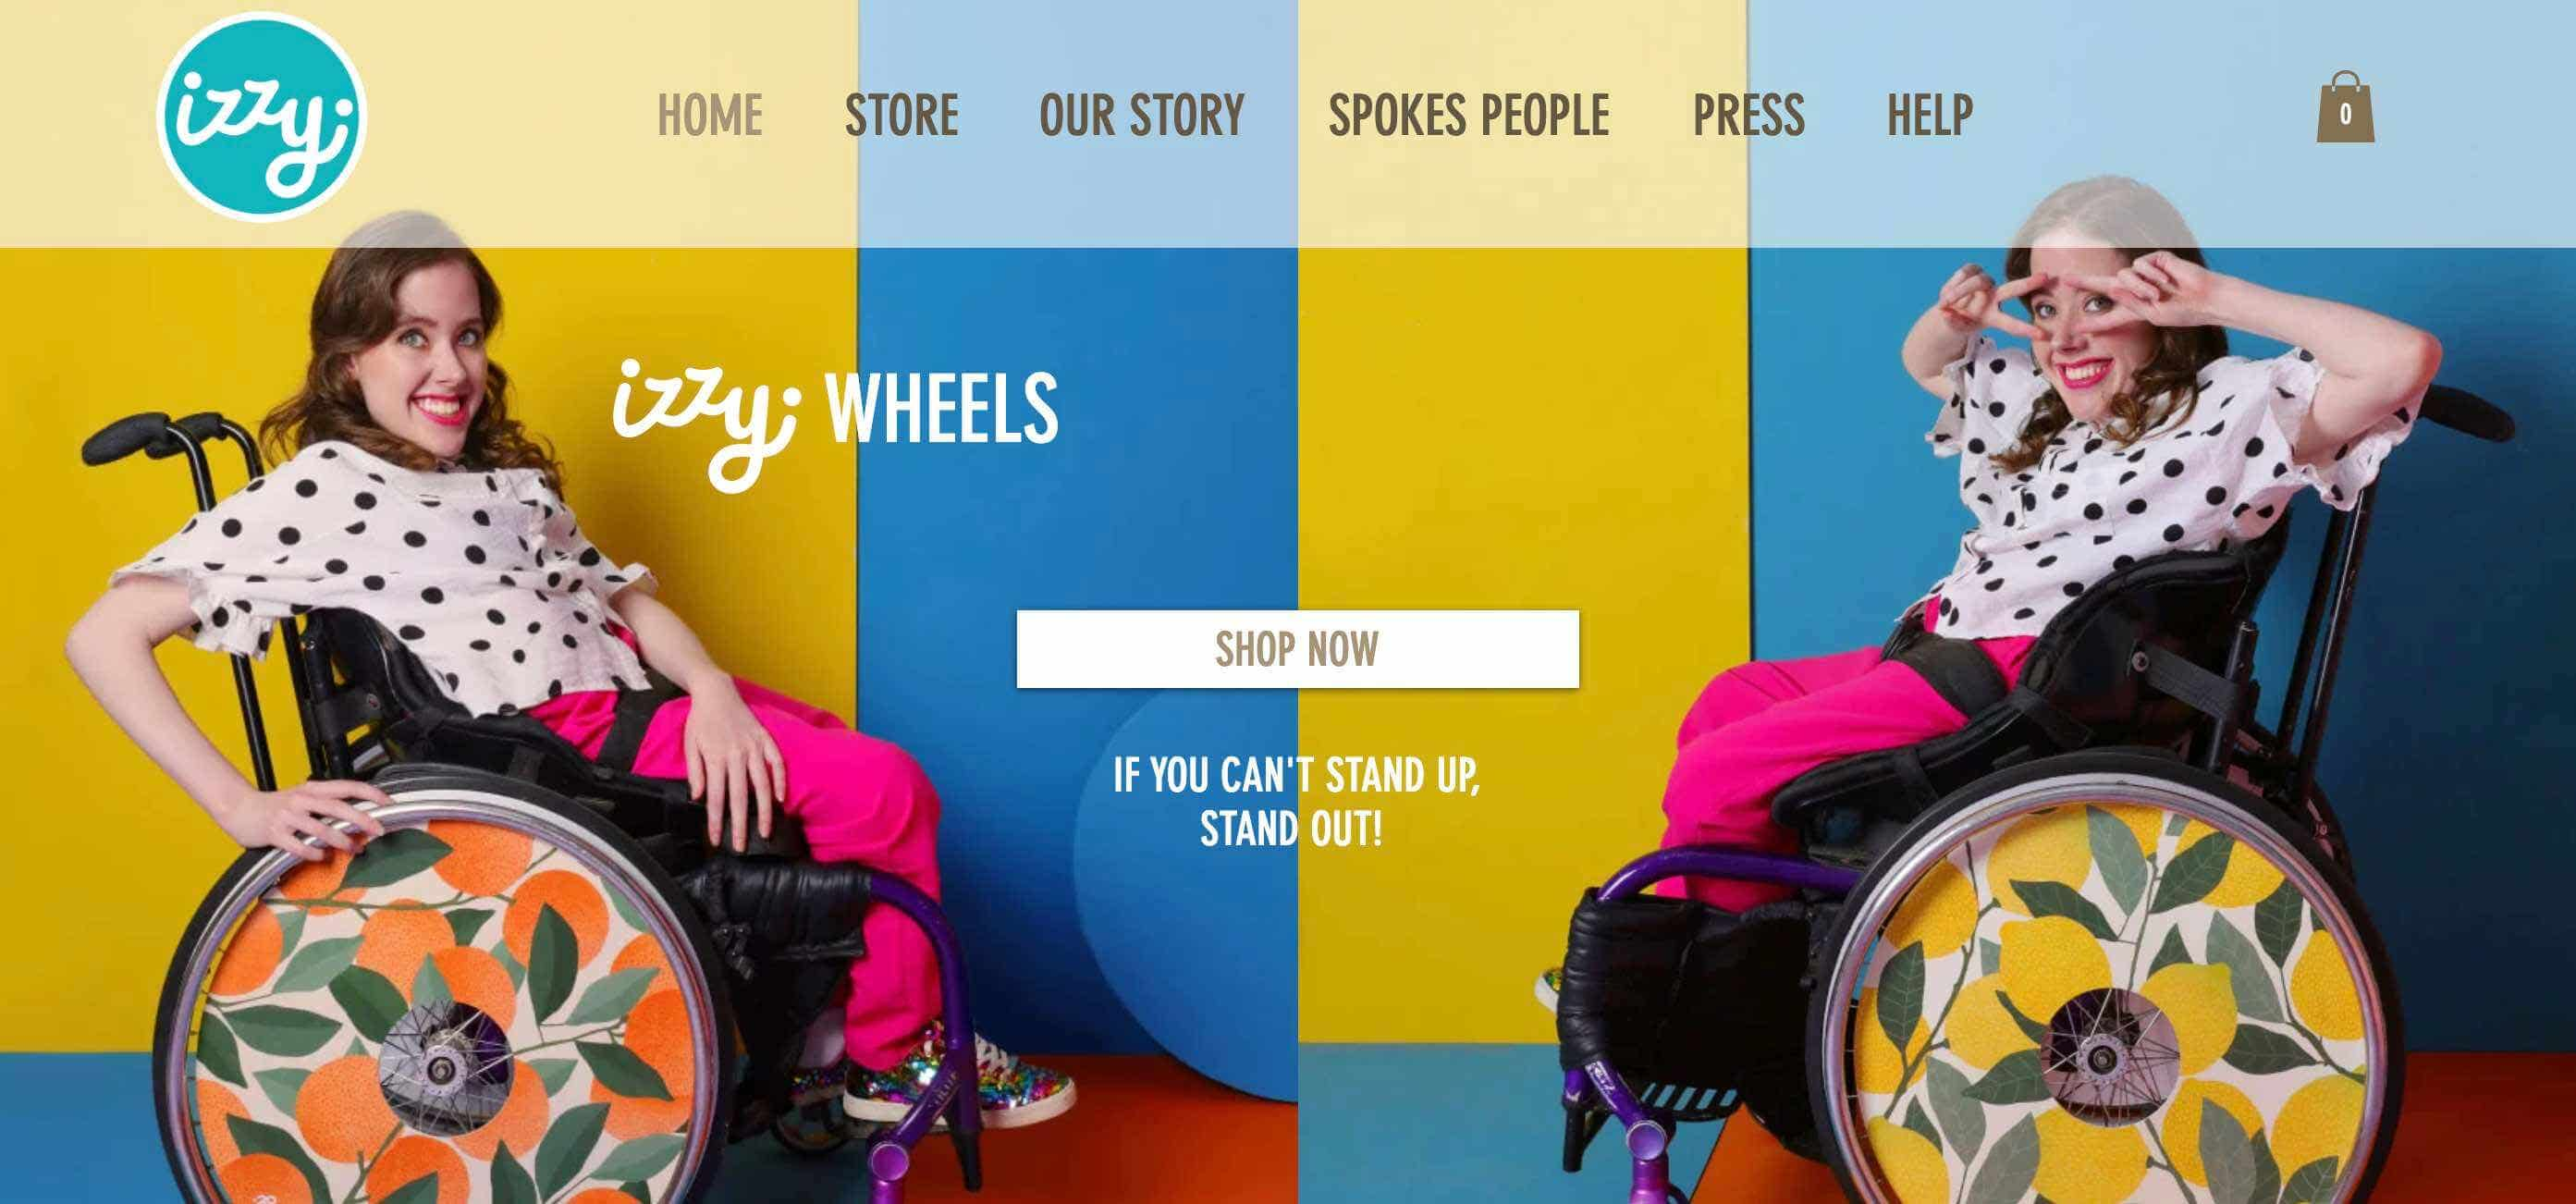 izzy wheels website design